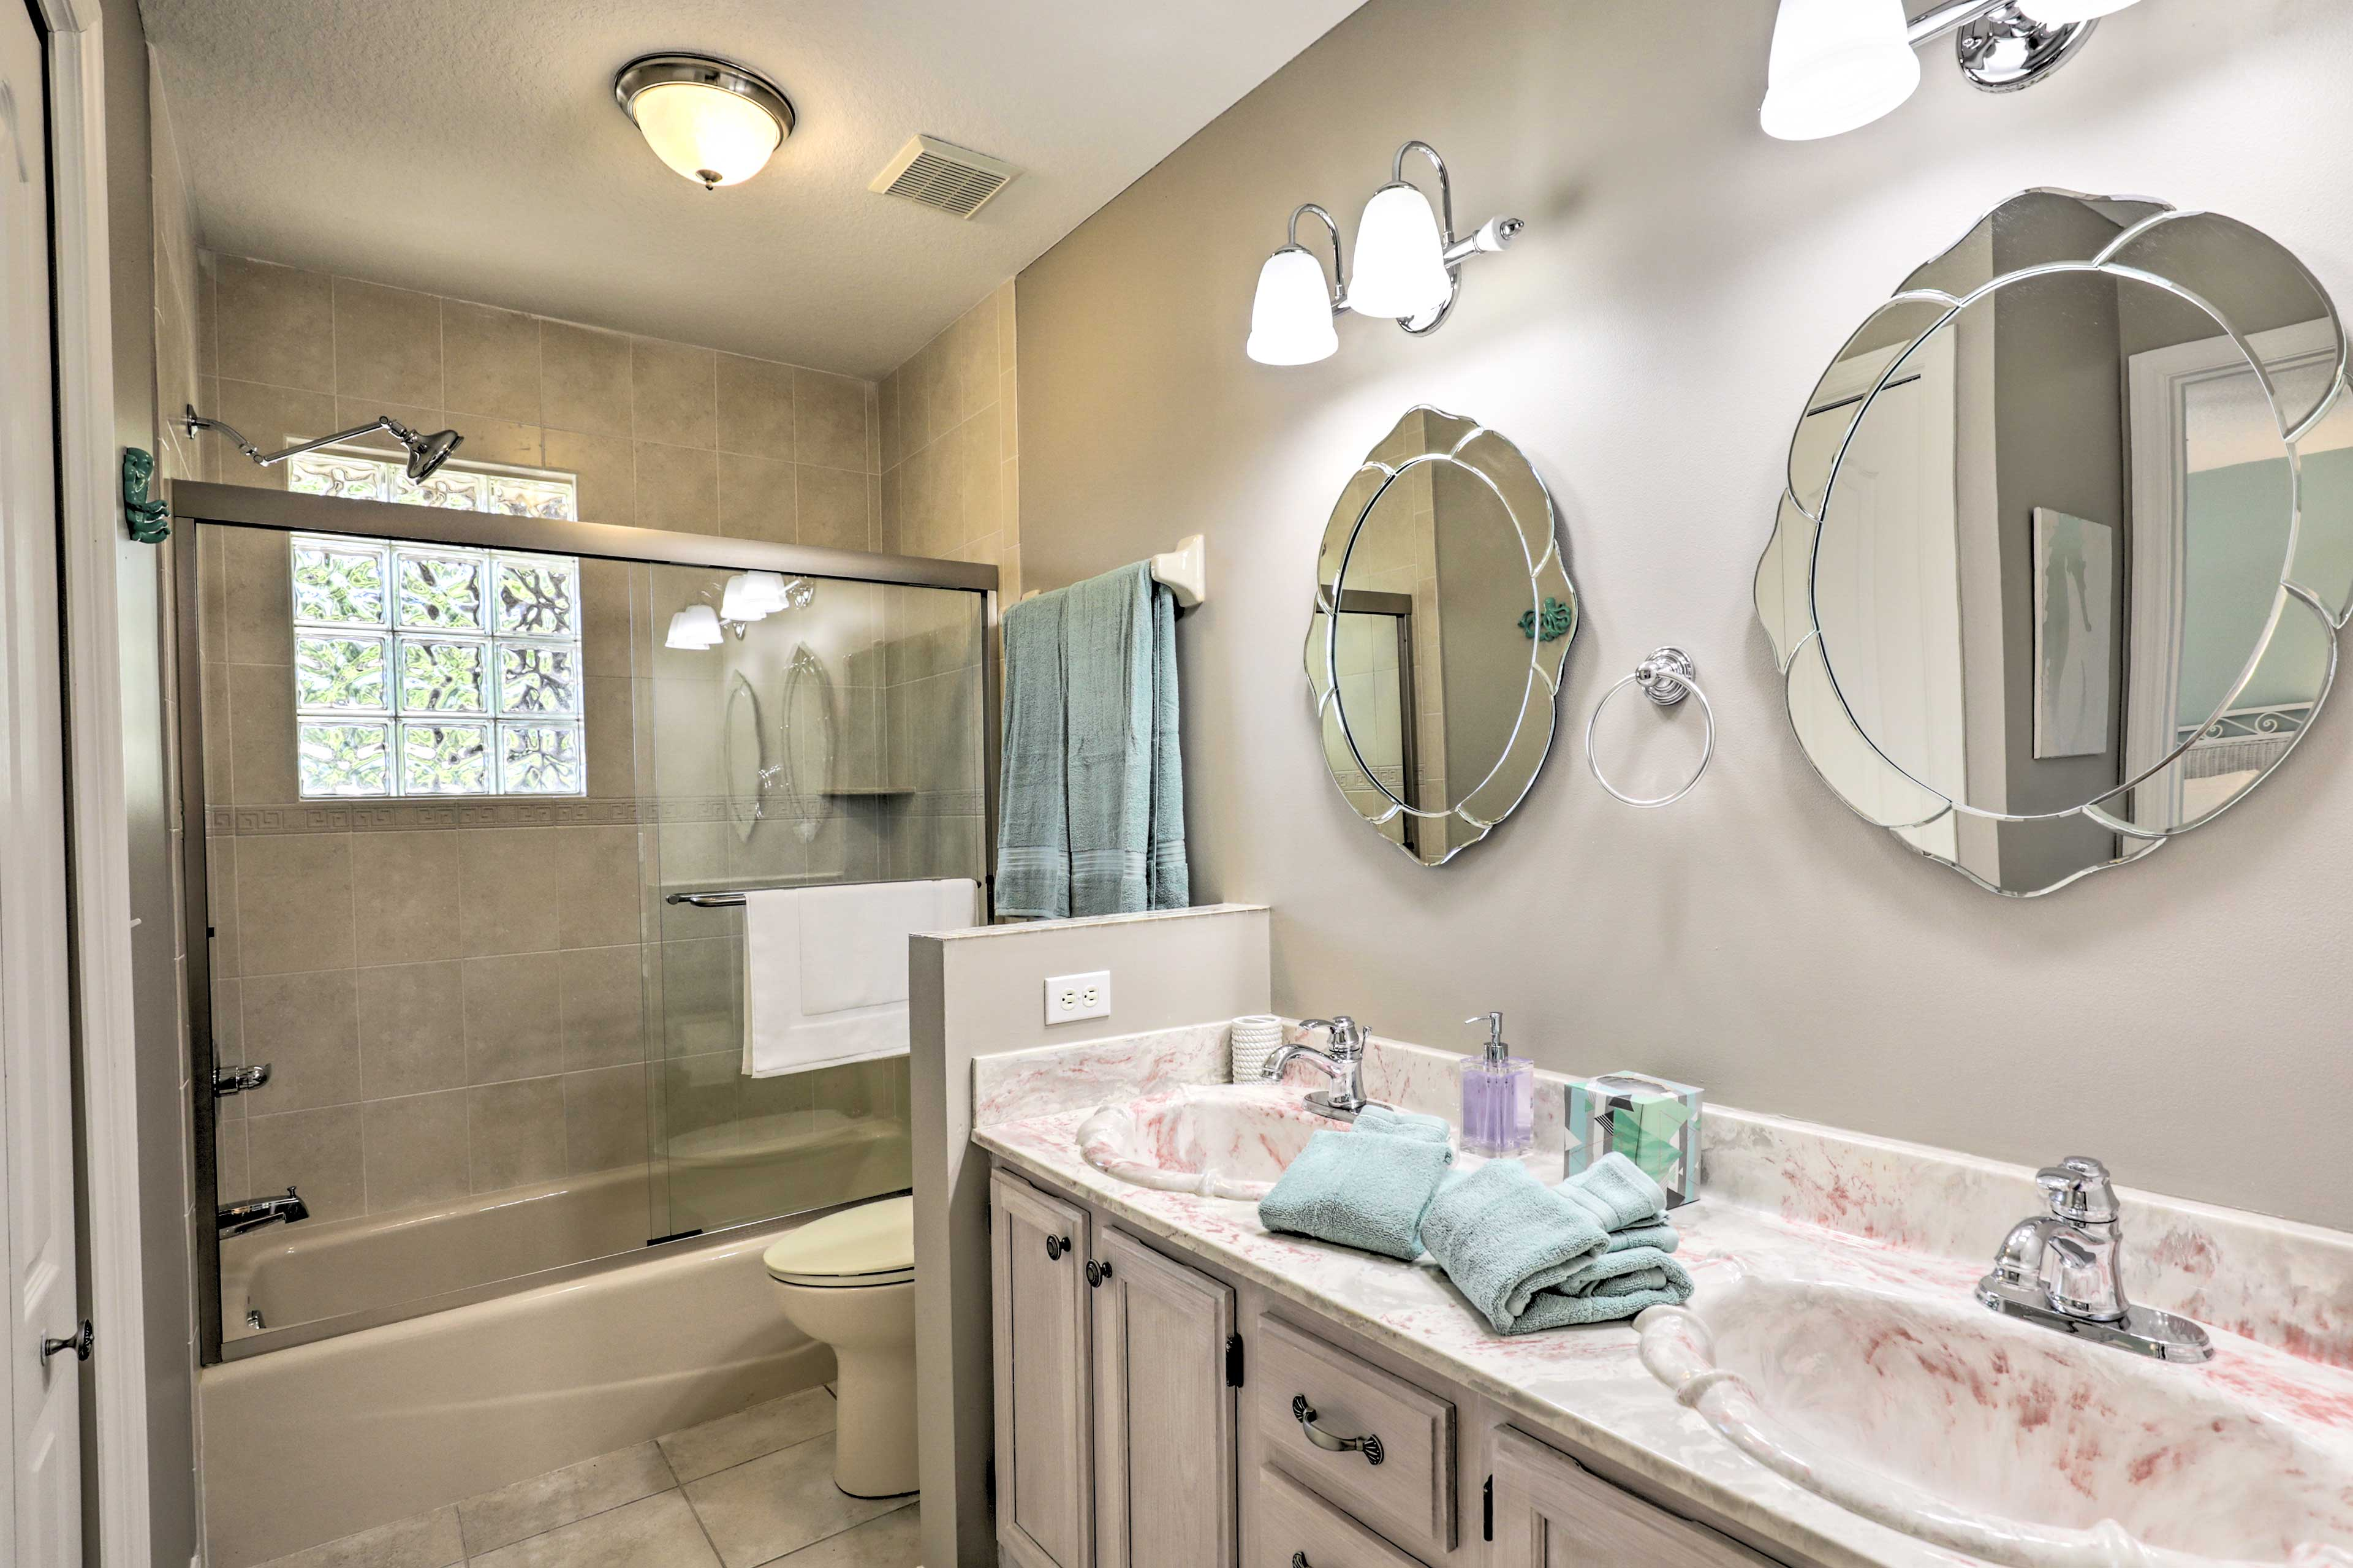 This bathroom features a double-sink vanity and shower/tun combo.